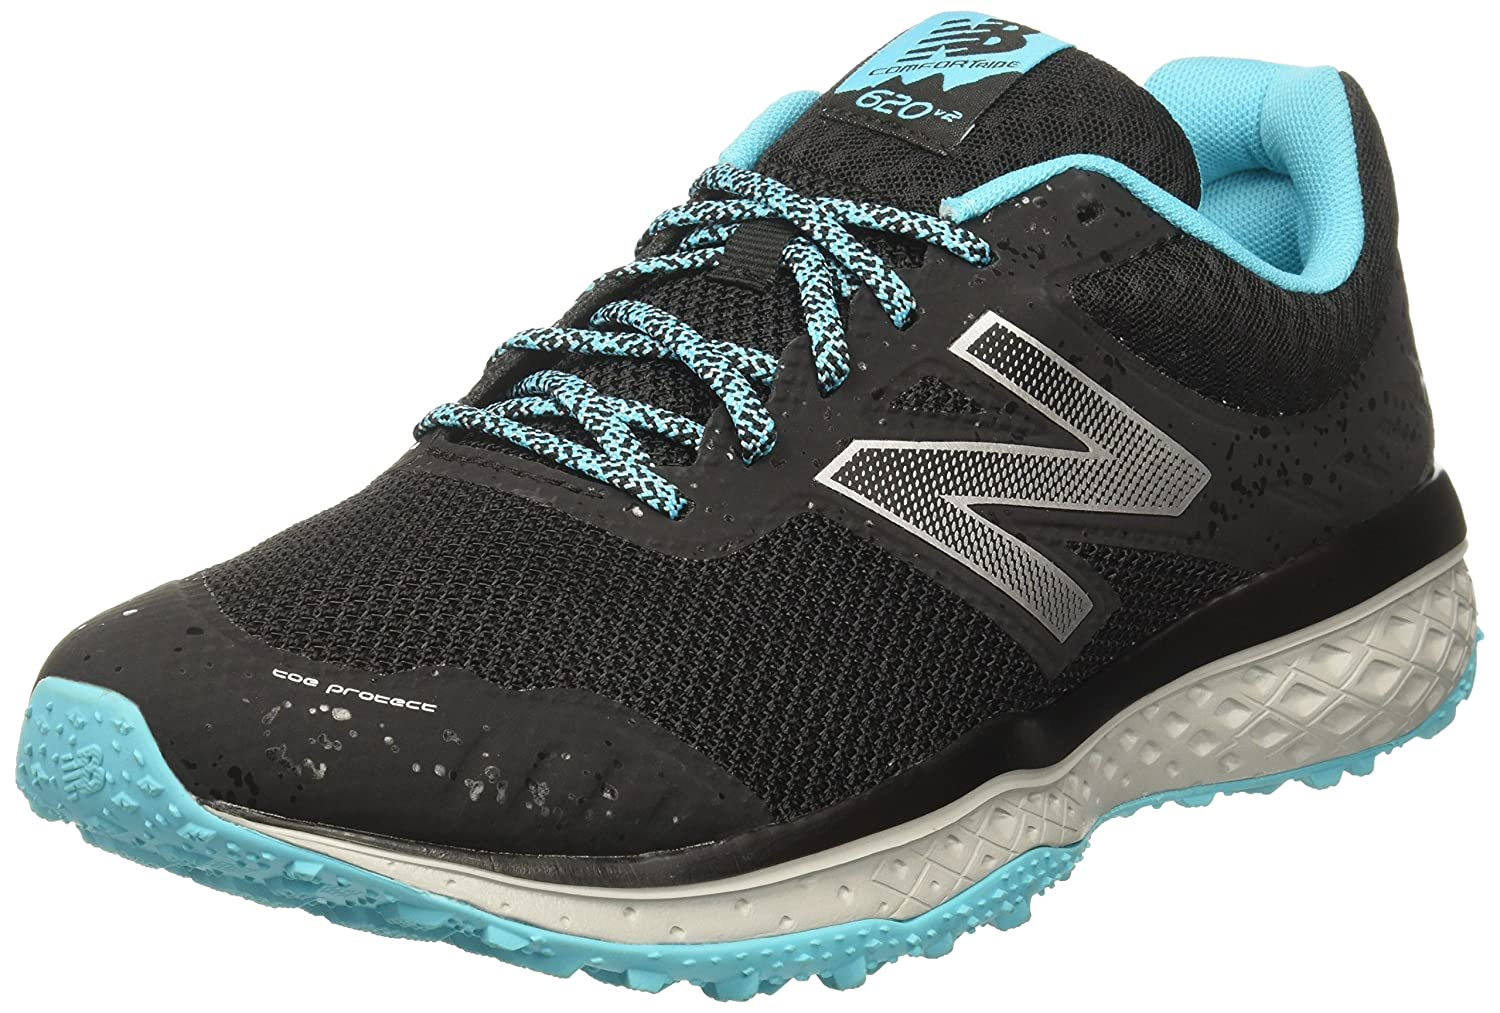 New Balance Women's Cushioning 620v2 Trail Running Shoe B01LWNKSZA 8.5 B(M) US|Black/Vivid Ozone Blue